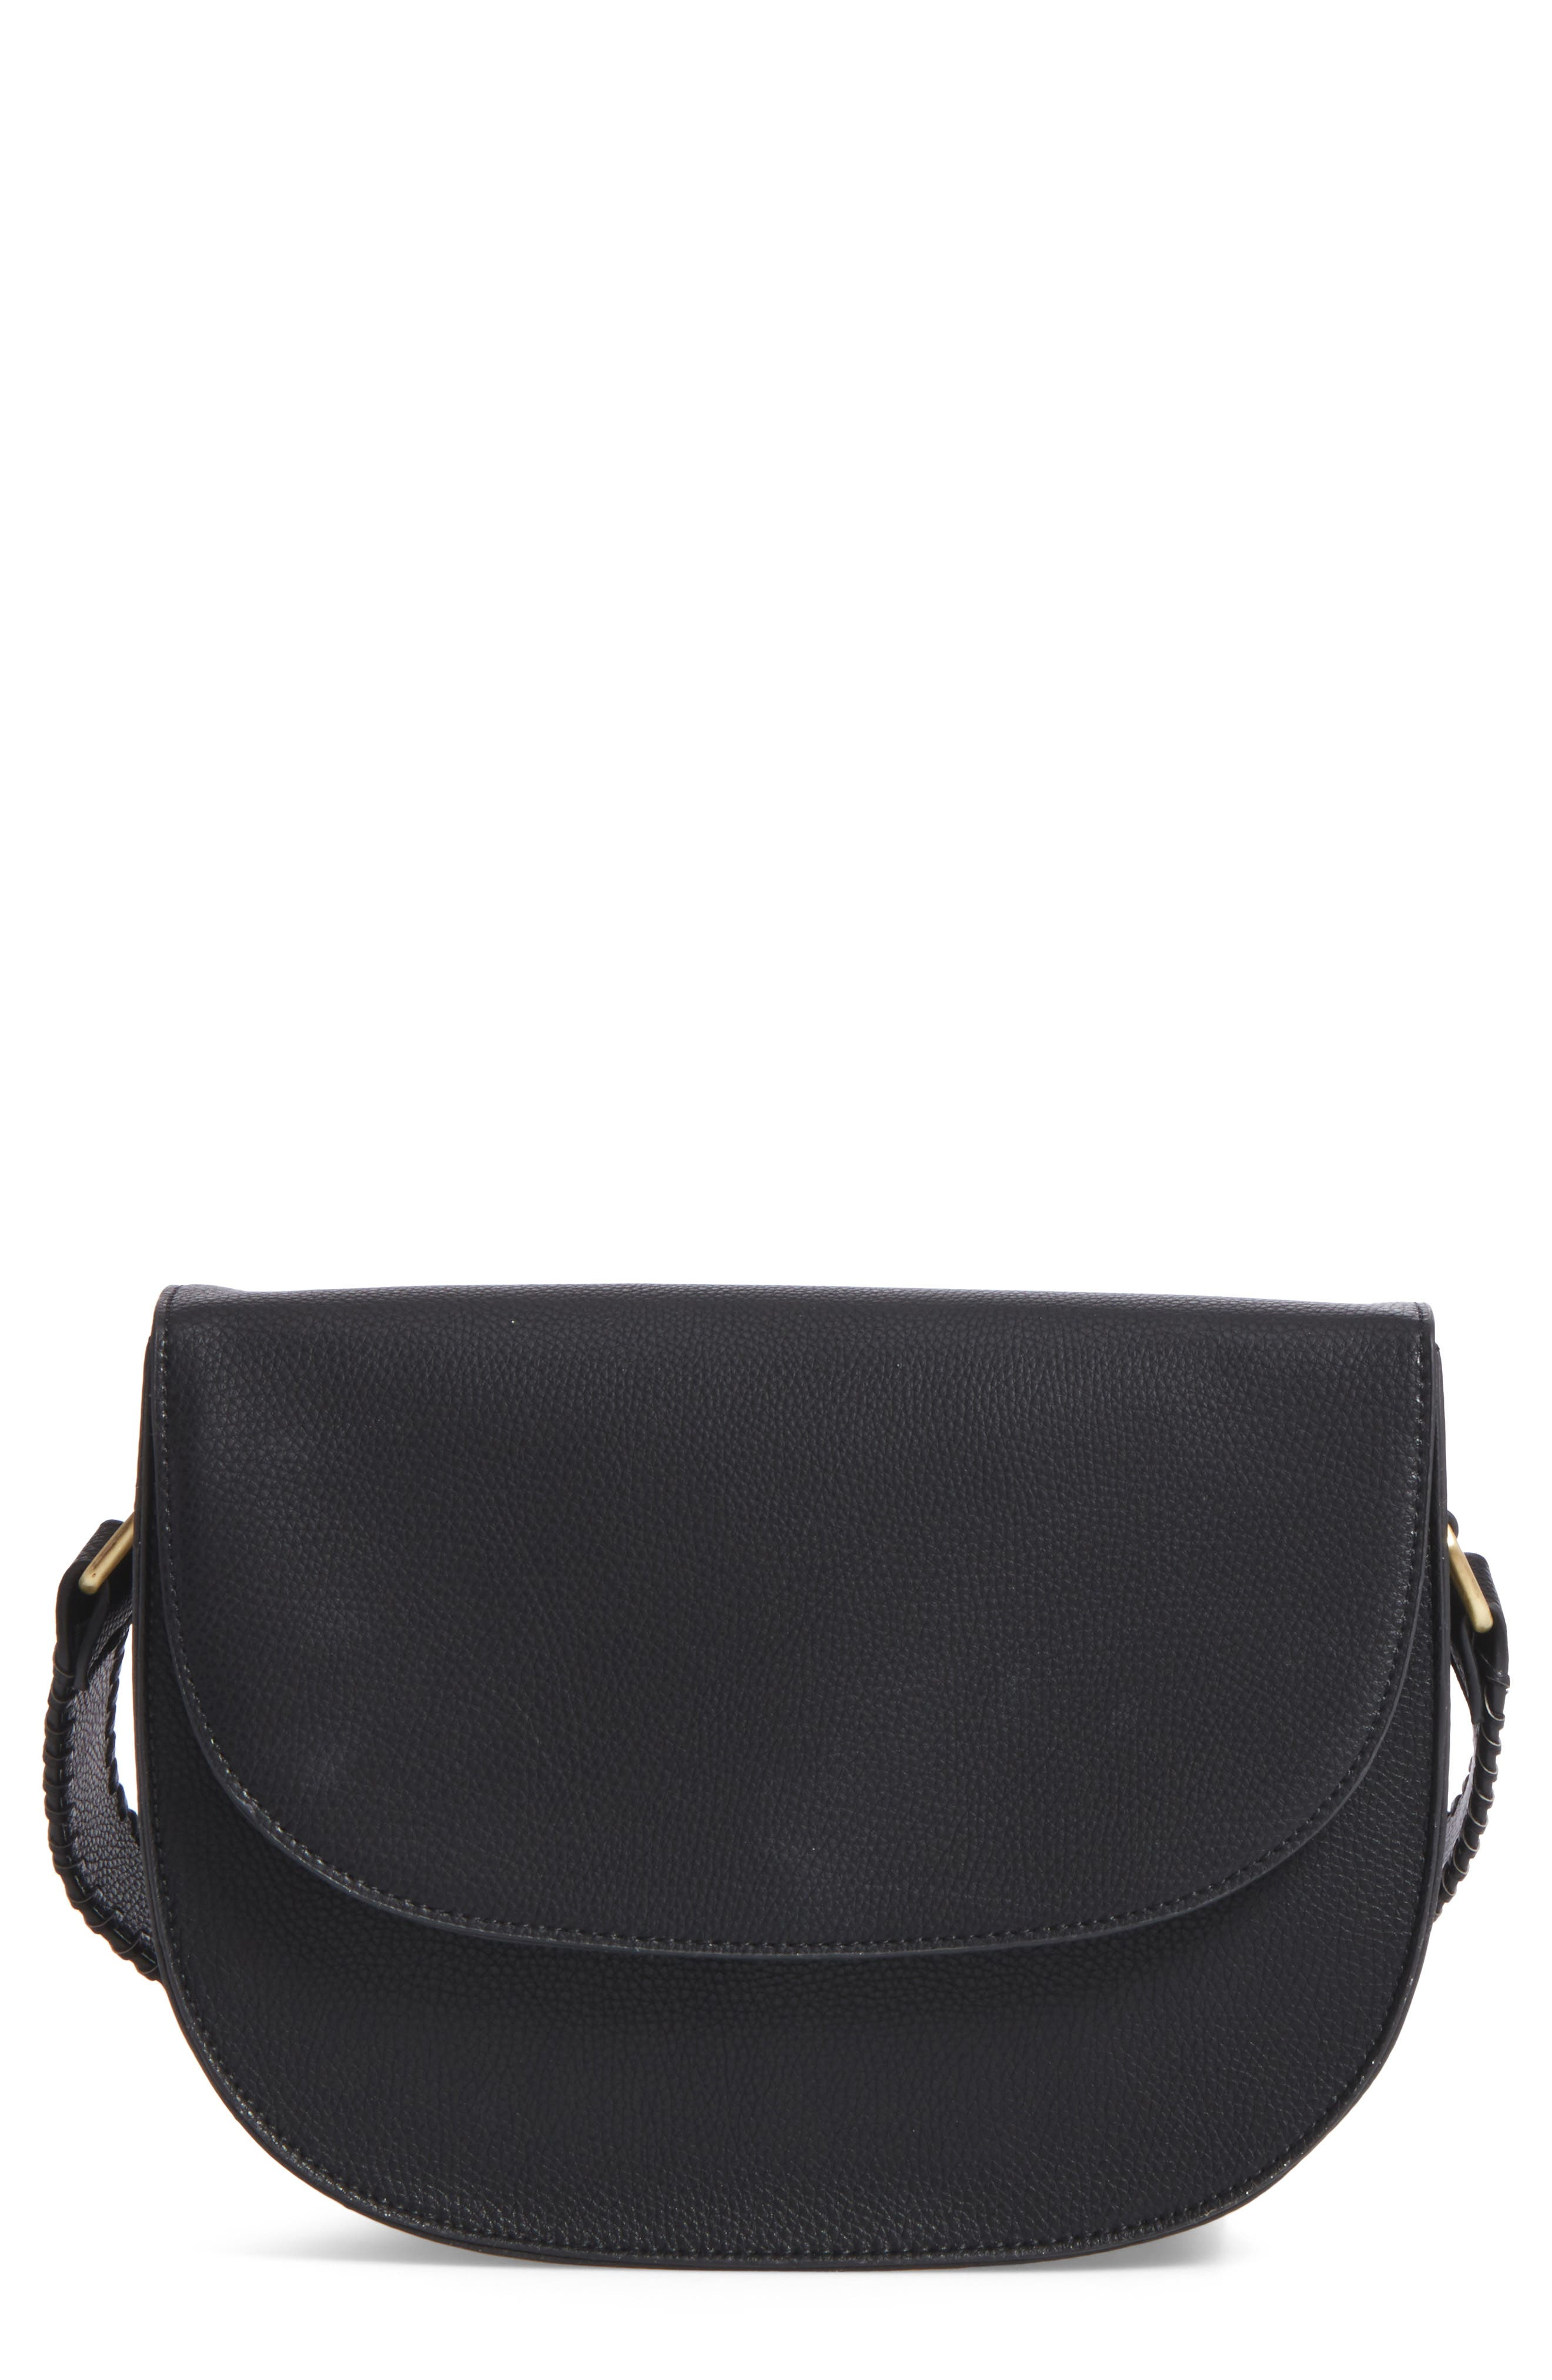 Main Image - Sole Society Honor Faux Leather Messenger Bag